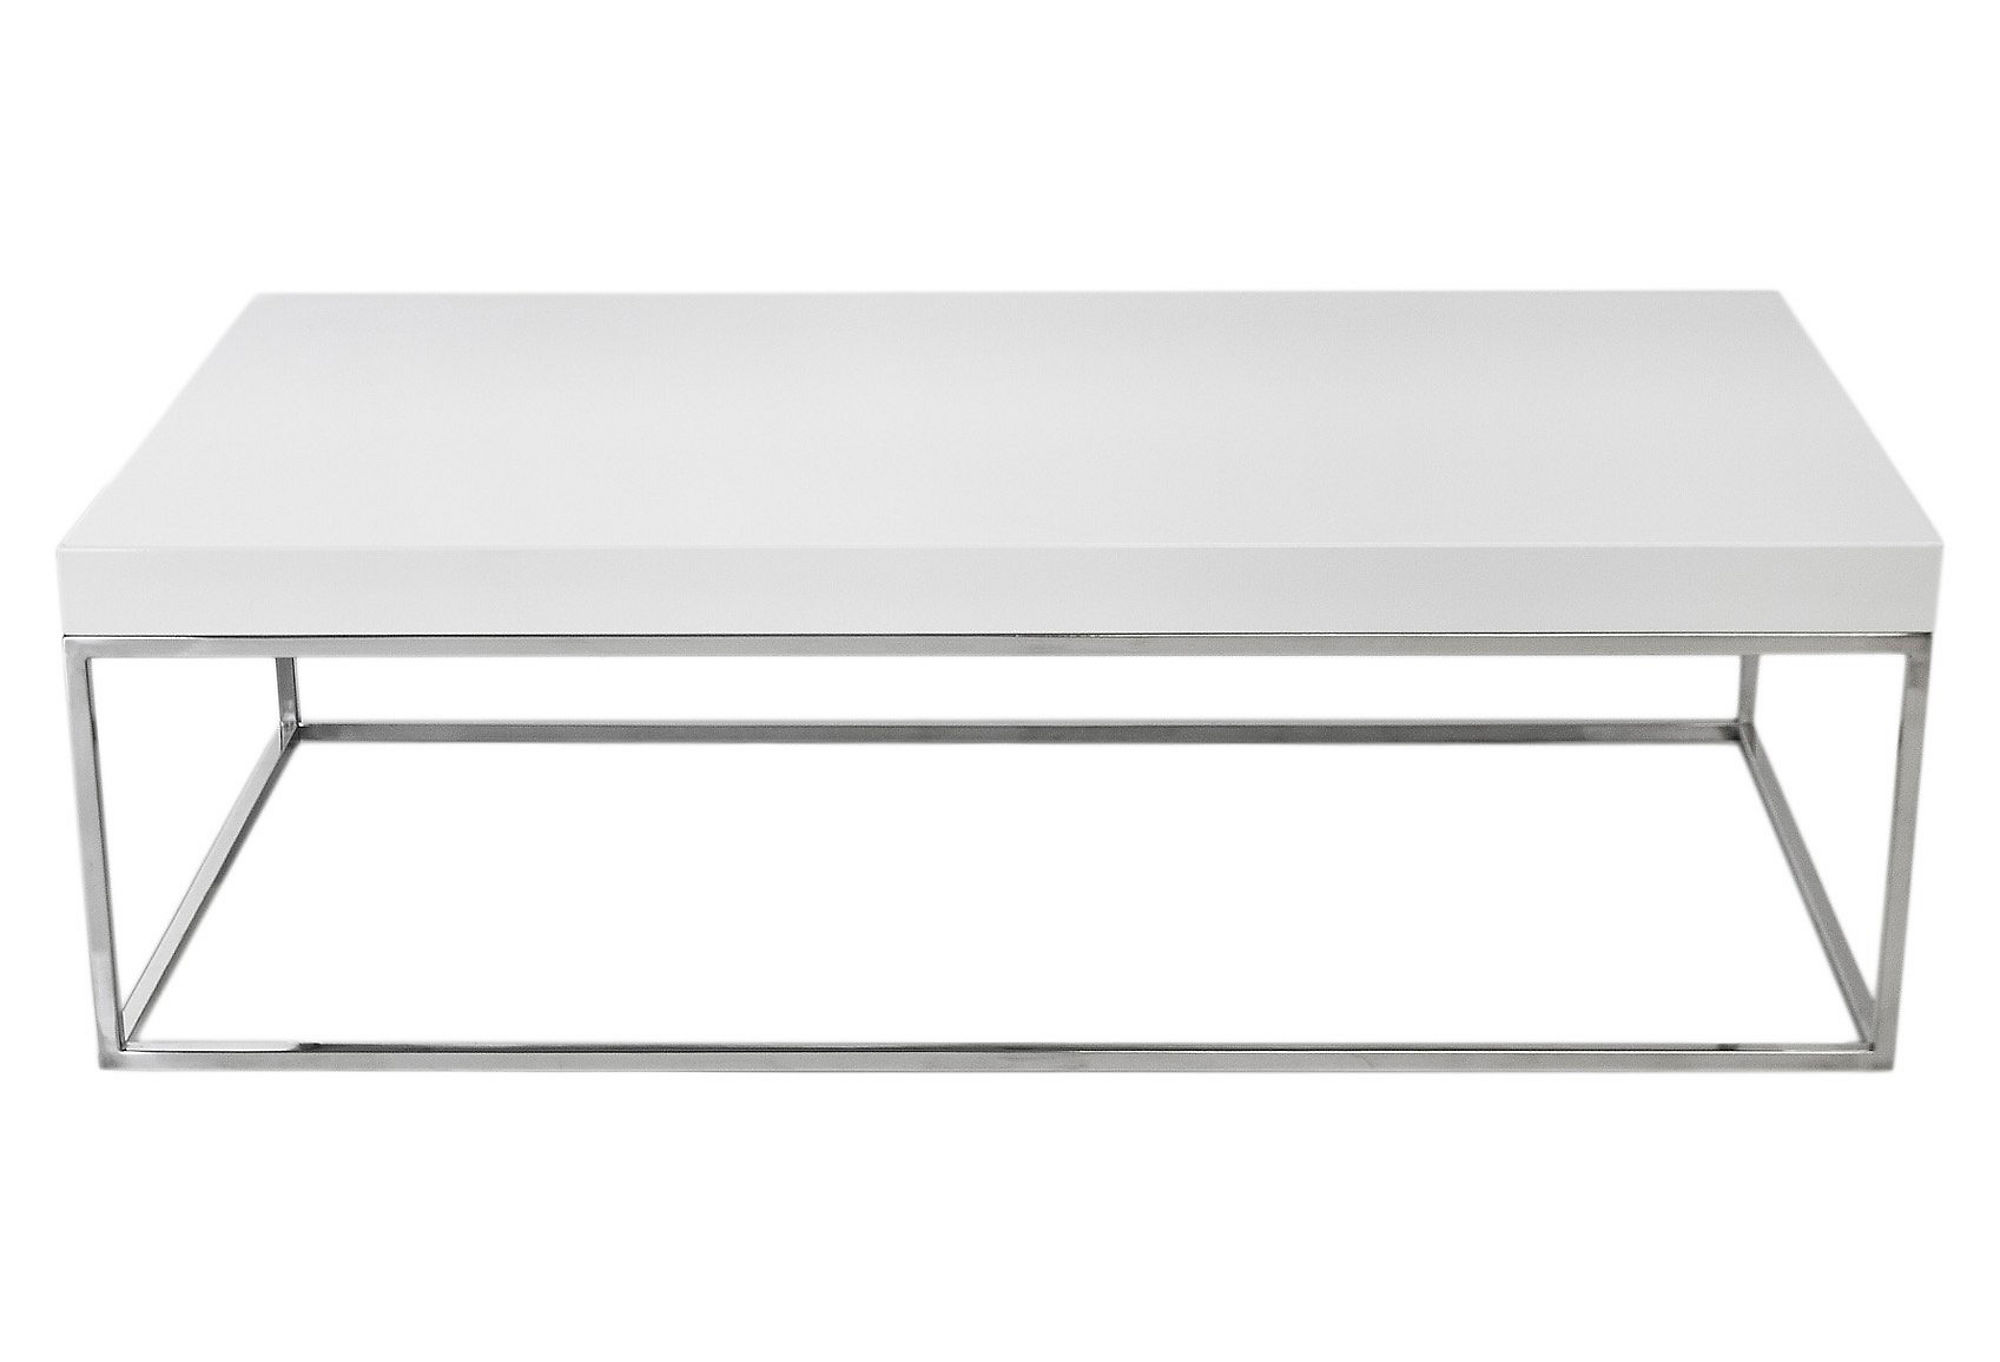 Pangea fred coffee table white lacquer by one kings lane havenly httpsstatichavenlyproductproductionphp588e46cd3b0ed geotapseo Gallery